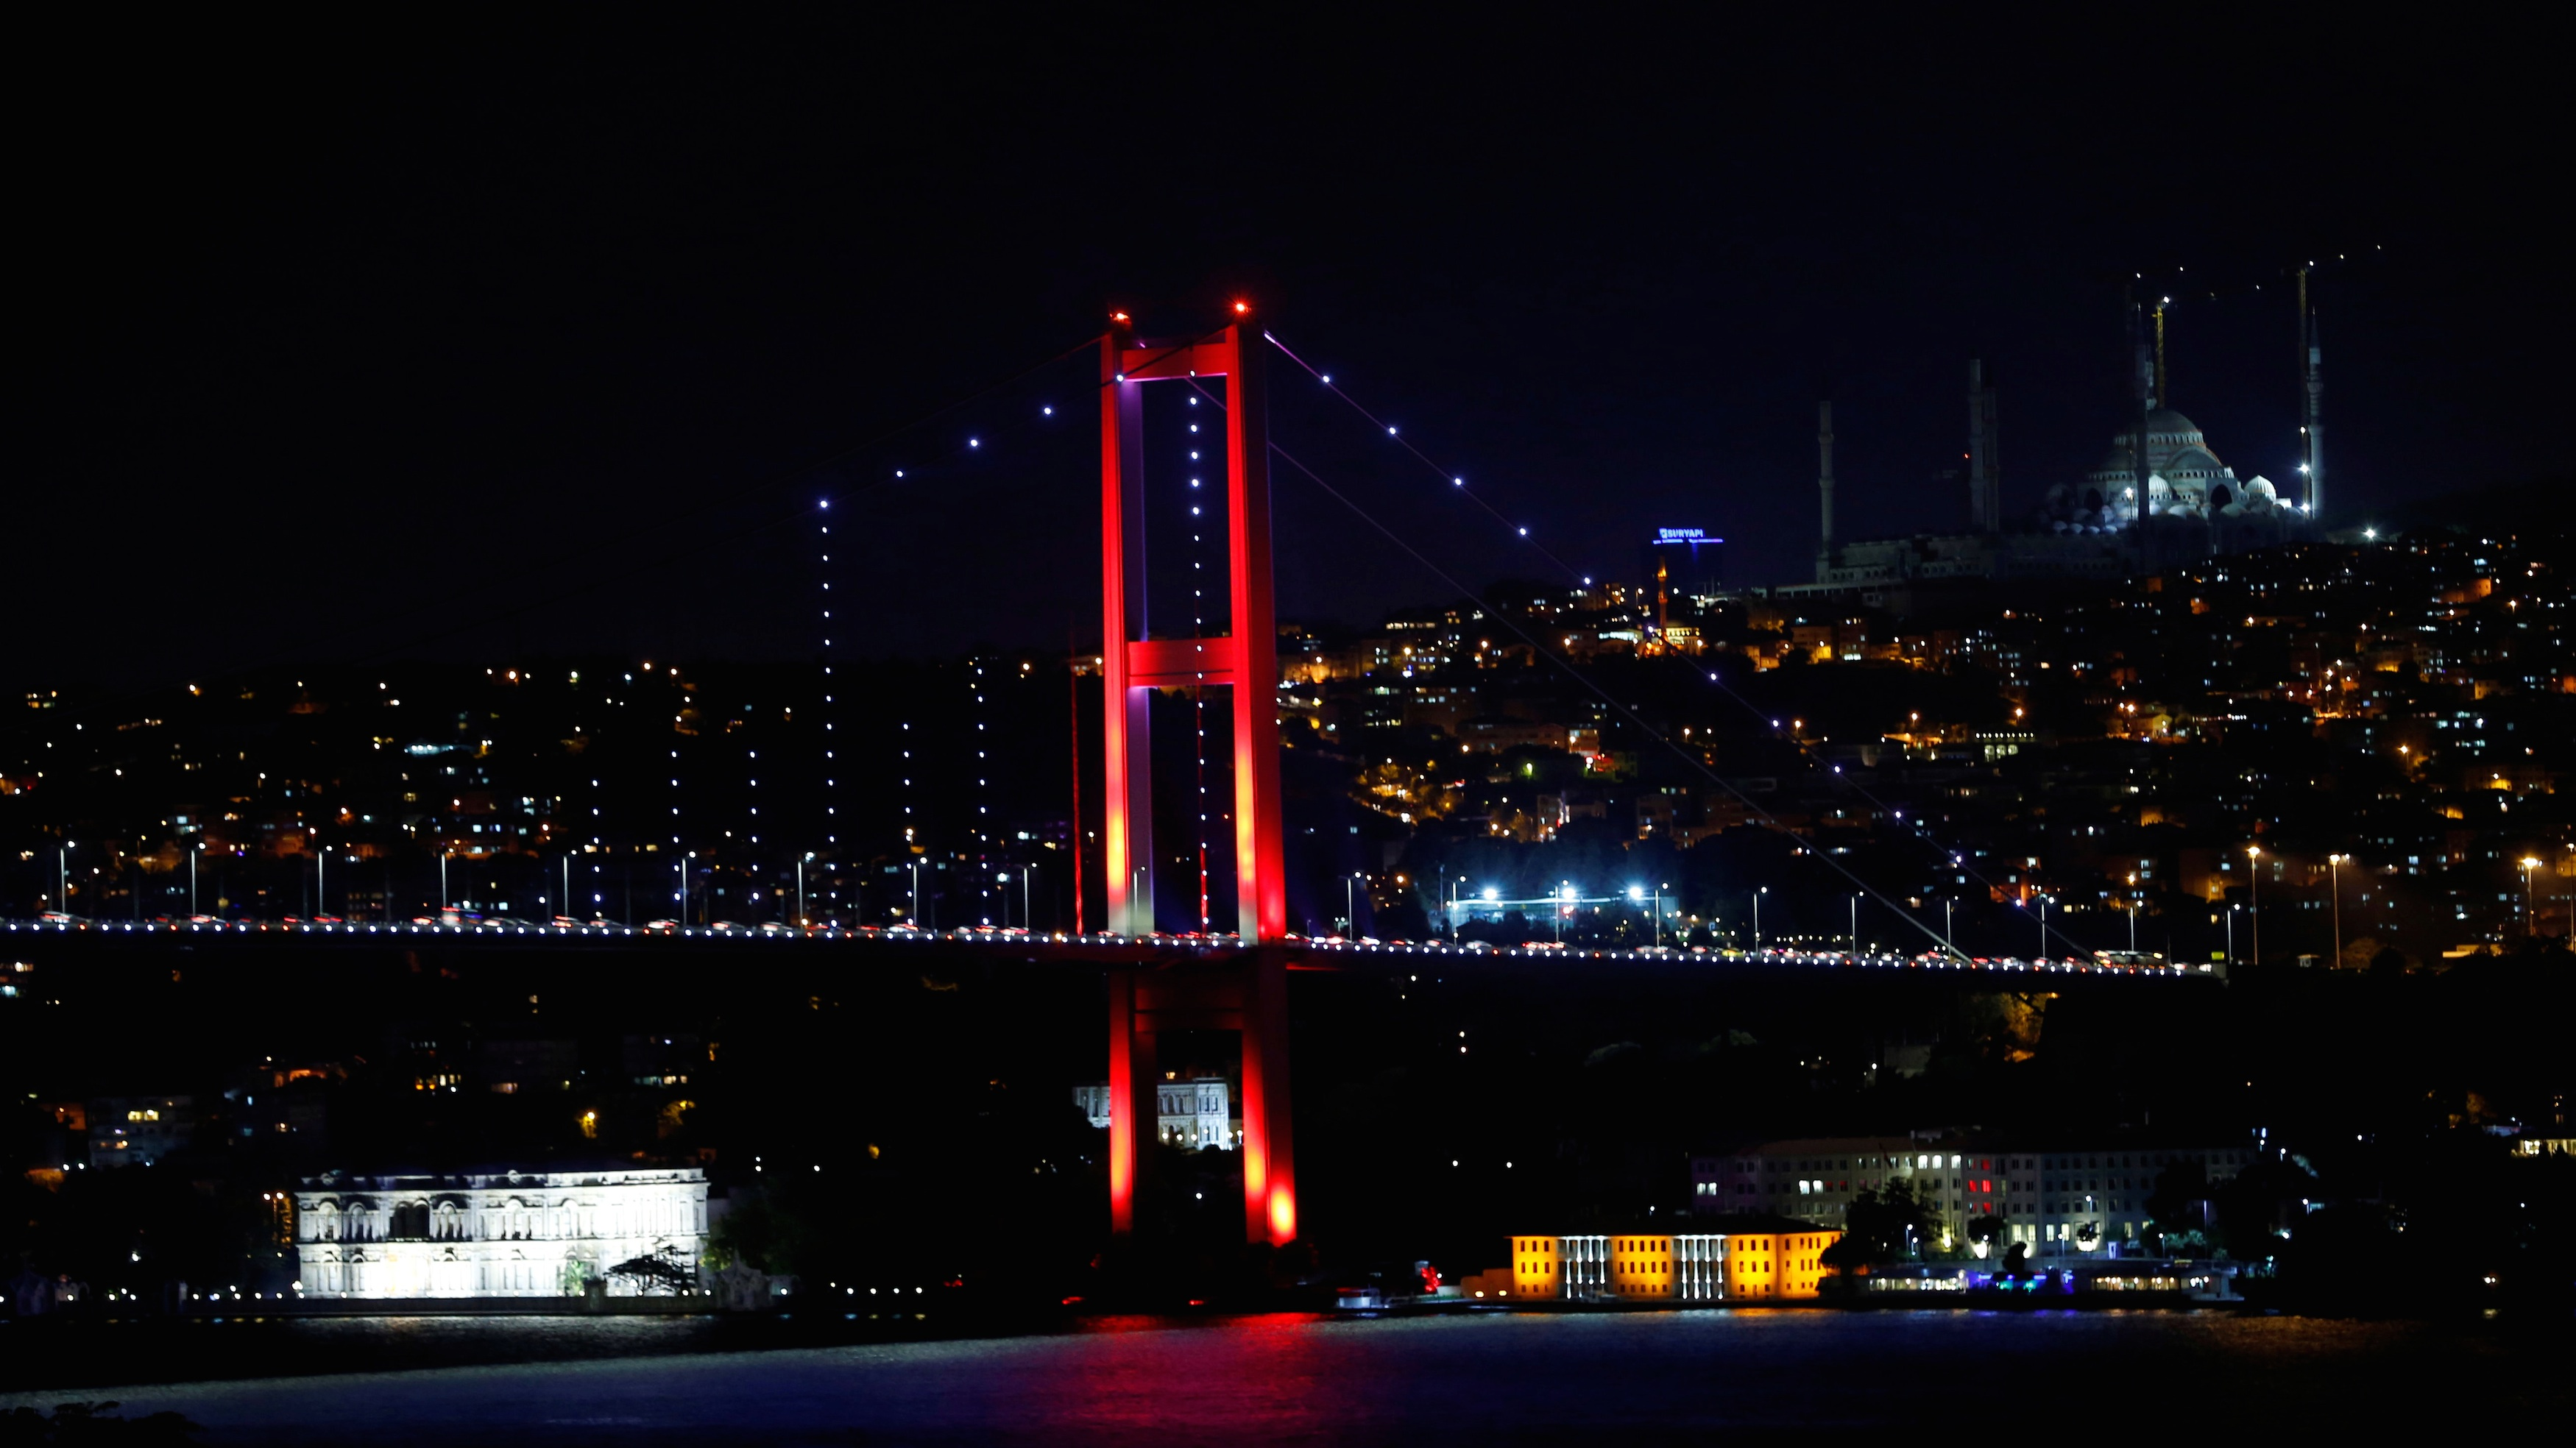 The Bosphorus bridge was closed by Turkish military for traffic coming from Asia to Europe.